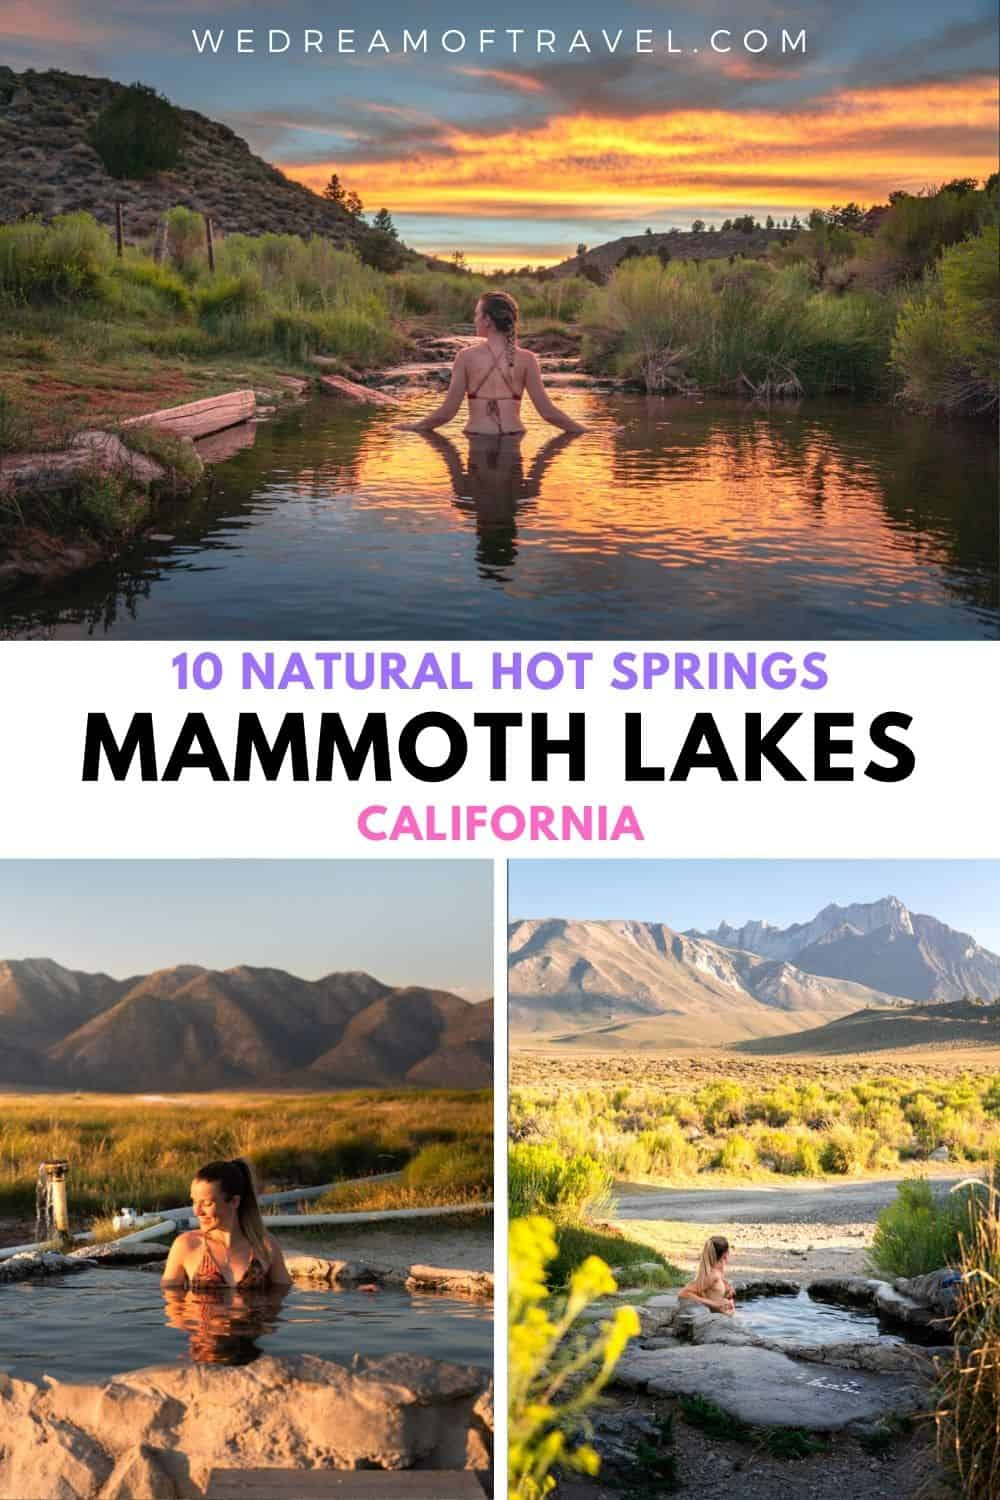 Mammoth Lakes is a geothermal wonderland with many naturally heated hot springs just waiting to be soaked in!  Find out the exact locations and everything you need to know about exploring these natural marvels.